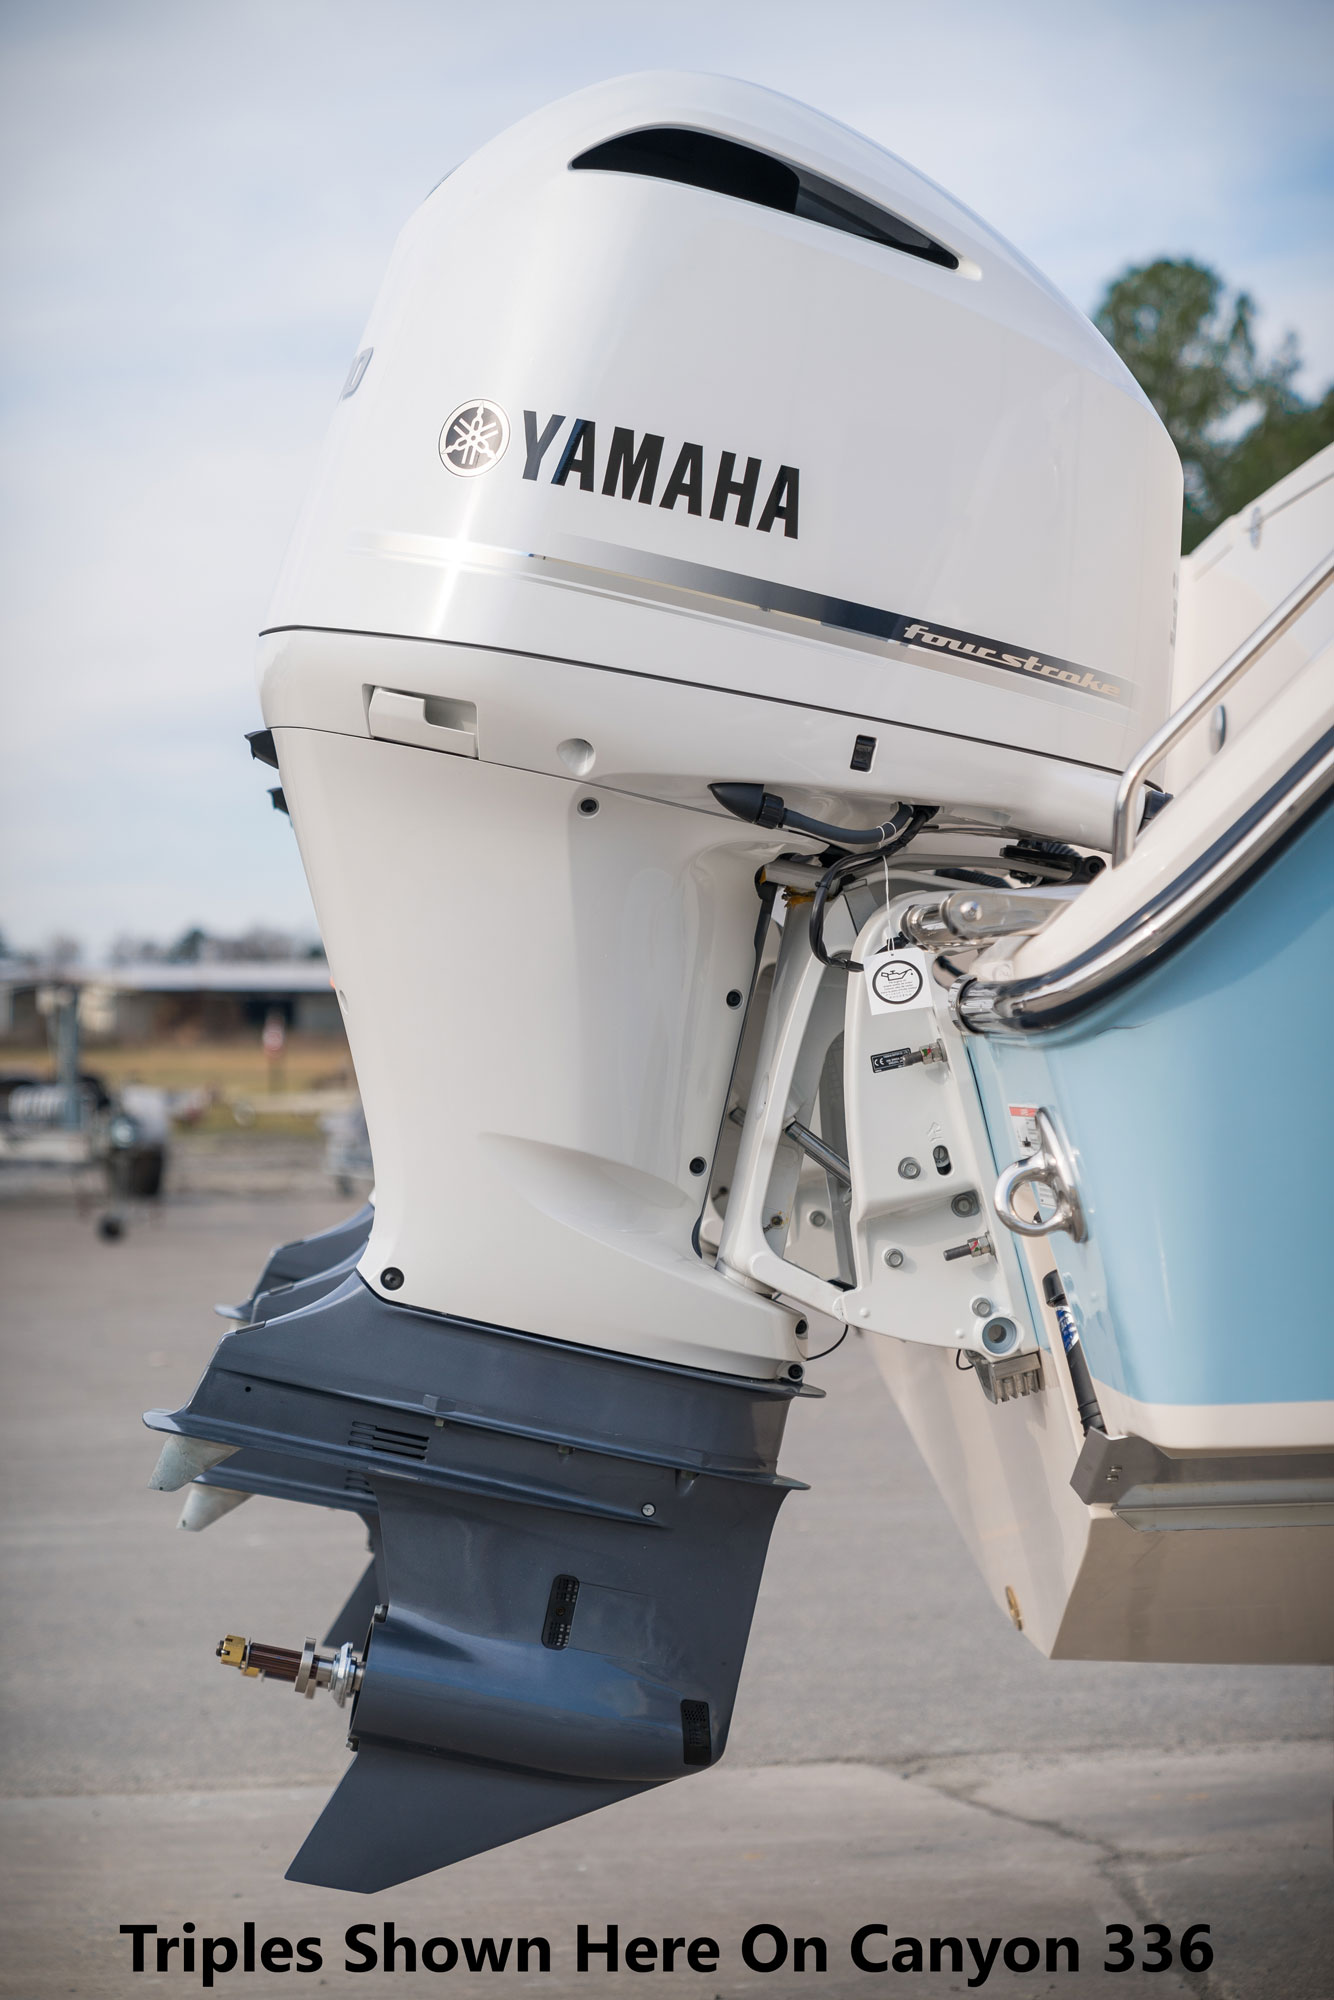 Fisherman 236 23 foot center console Yamaha factory-painted engine in pearlescent white